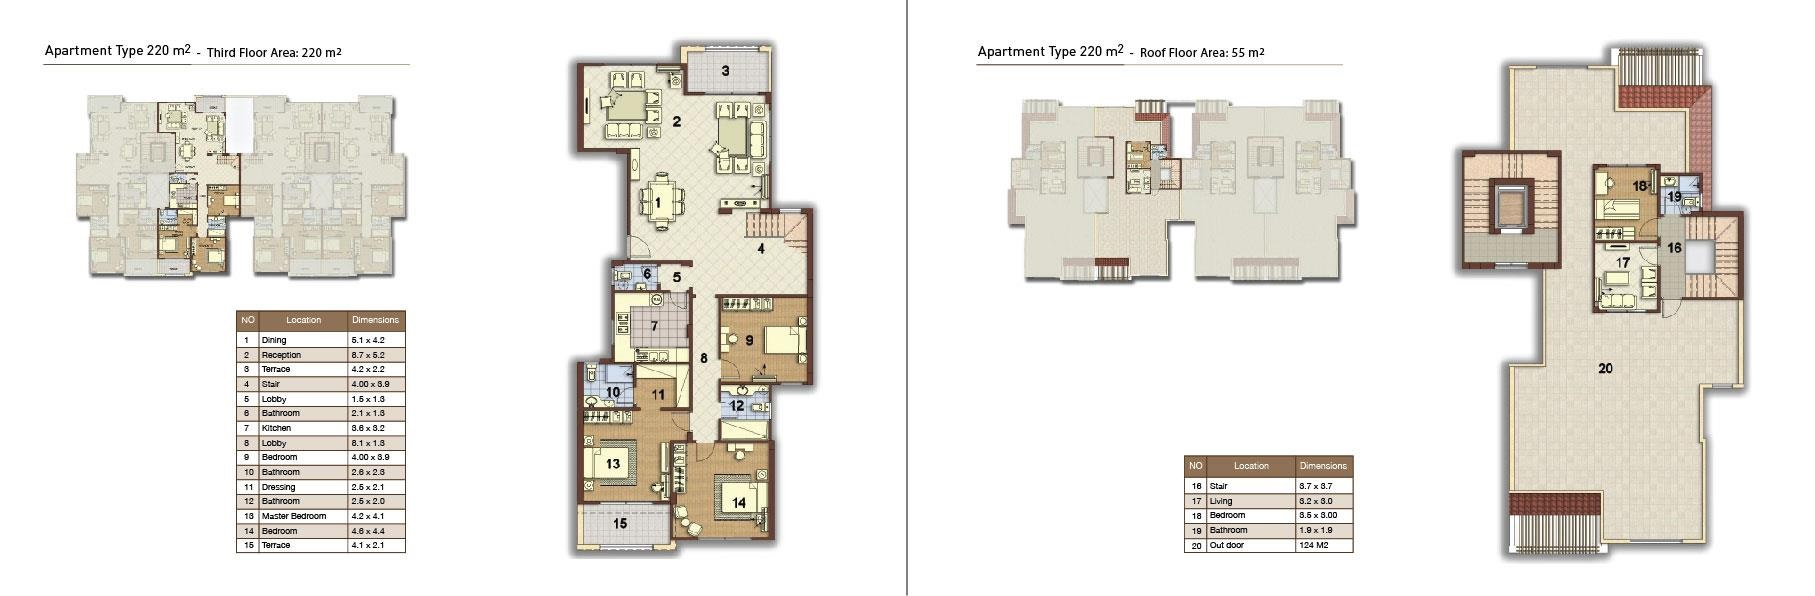 apartment type 220 middle 02